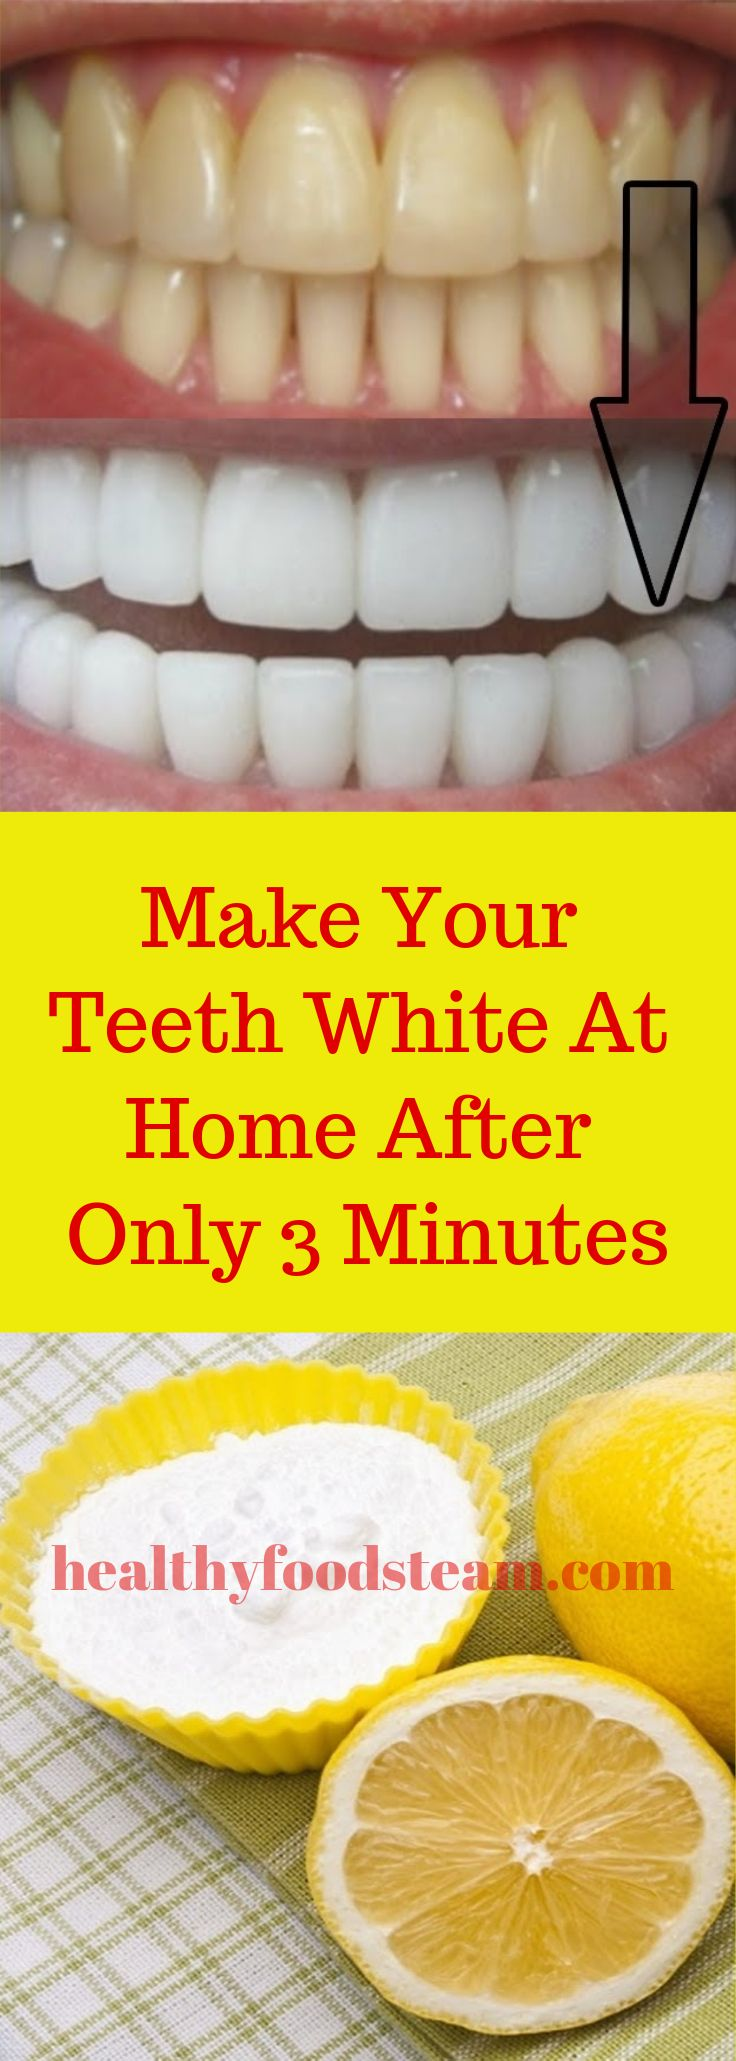 Make Your Teeth White At Home After Only 3 Minutes Detox